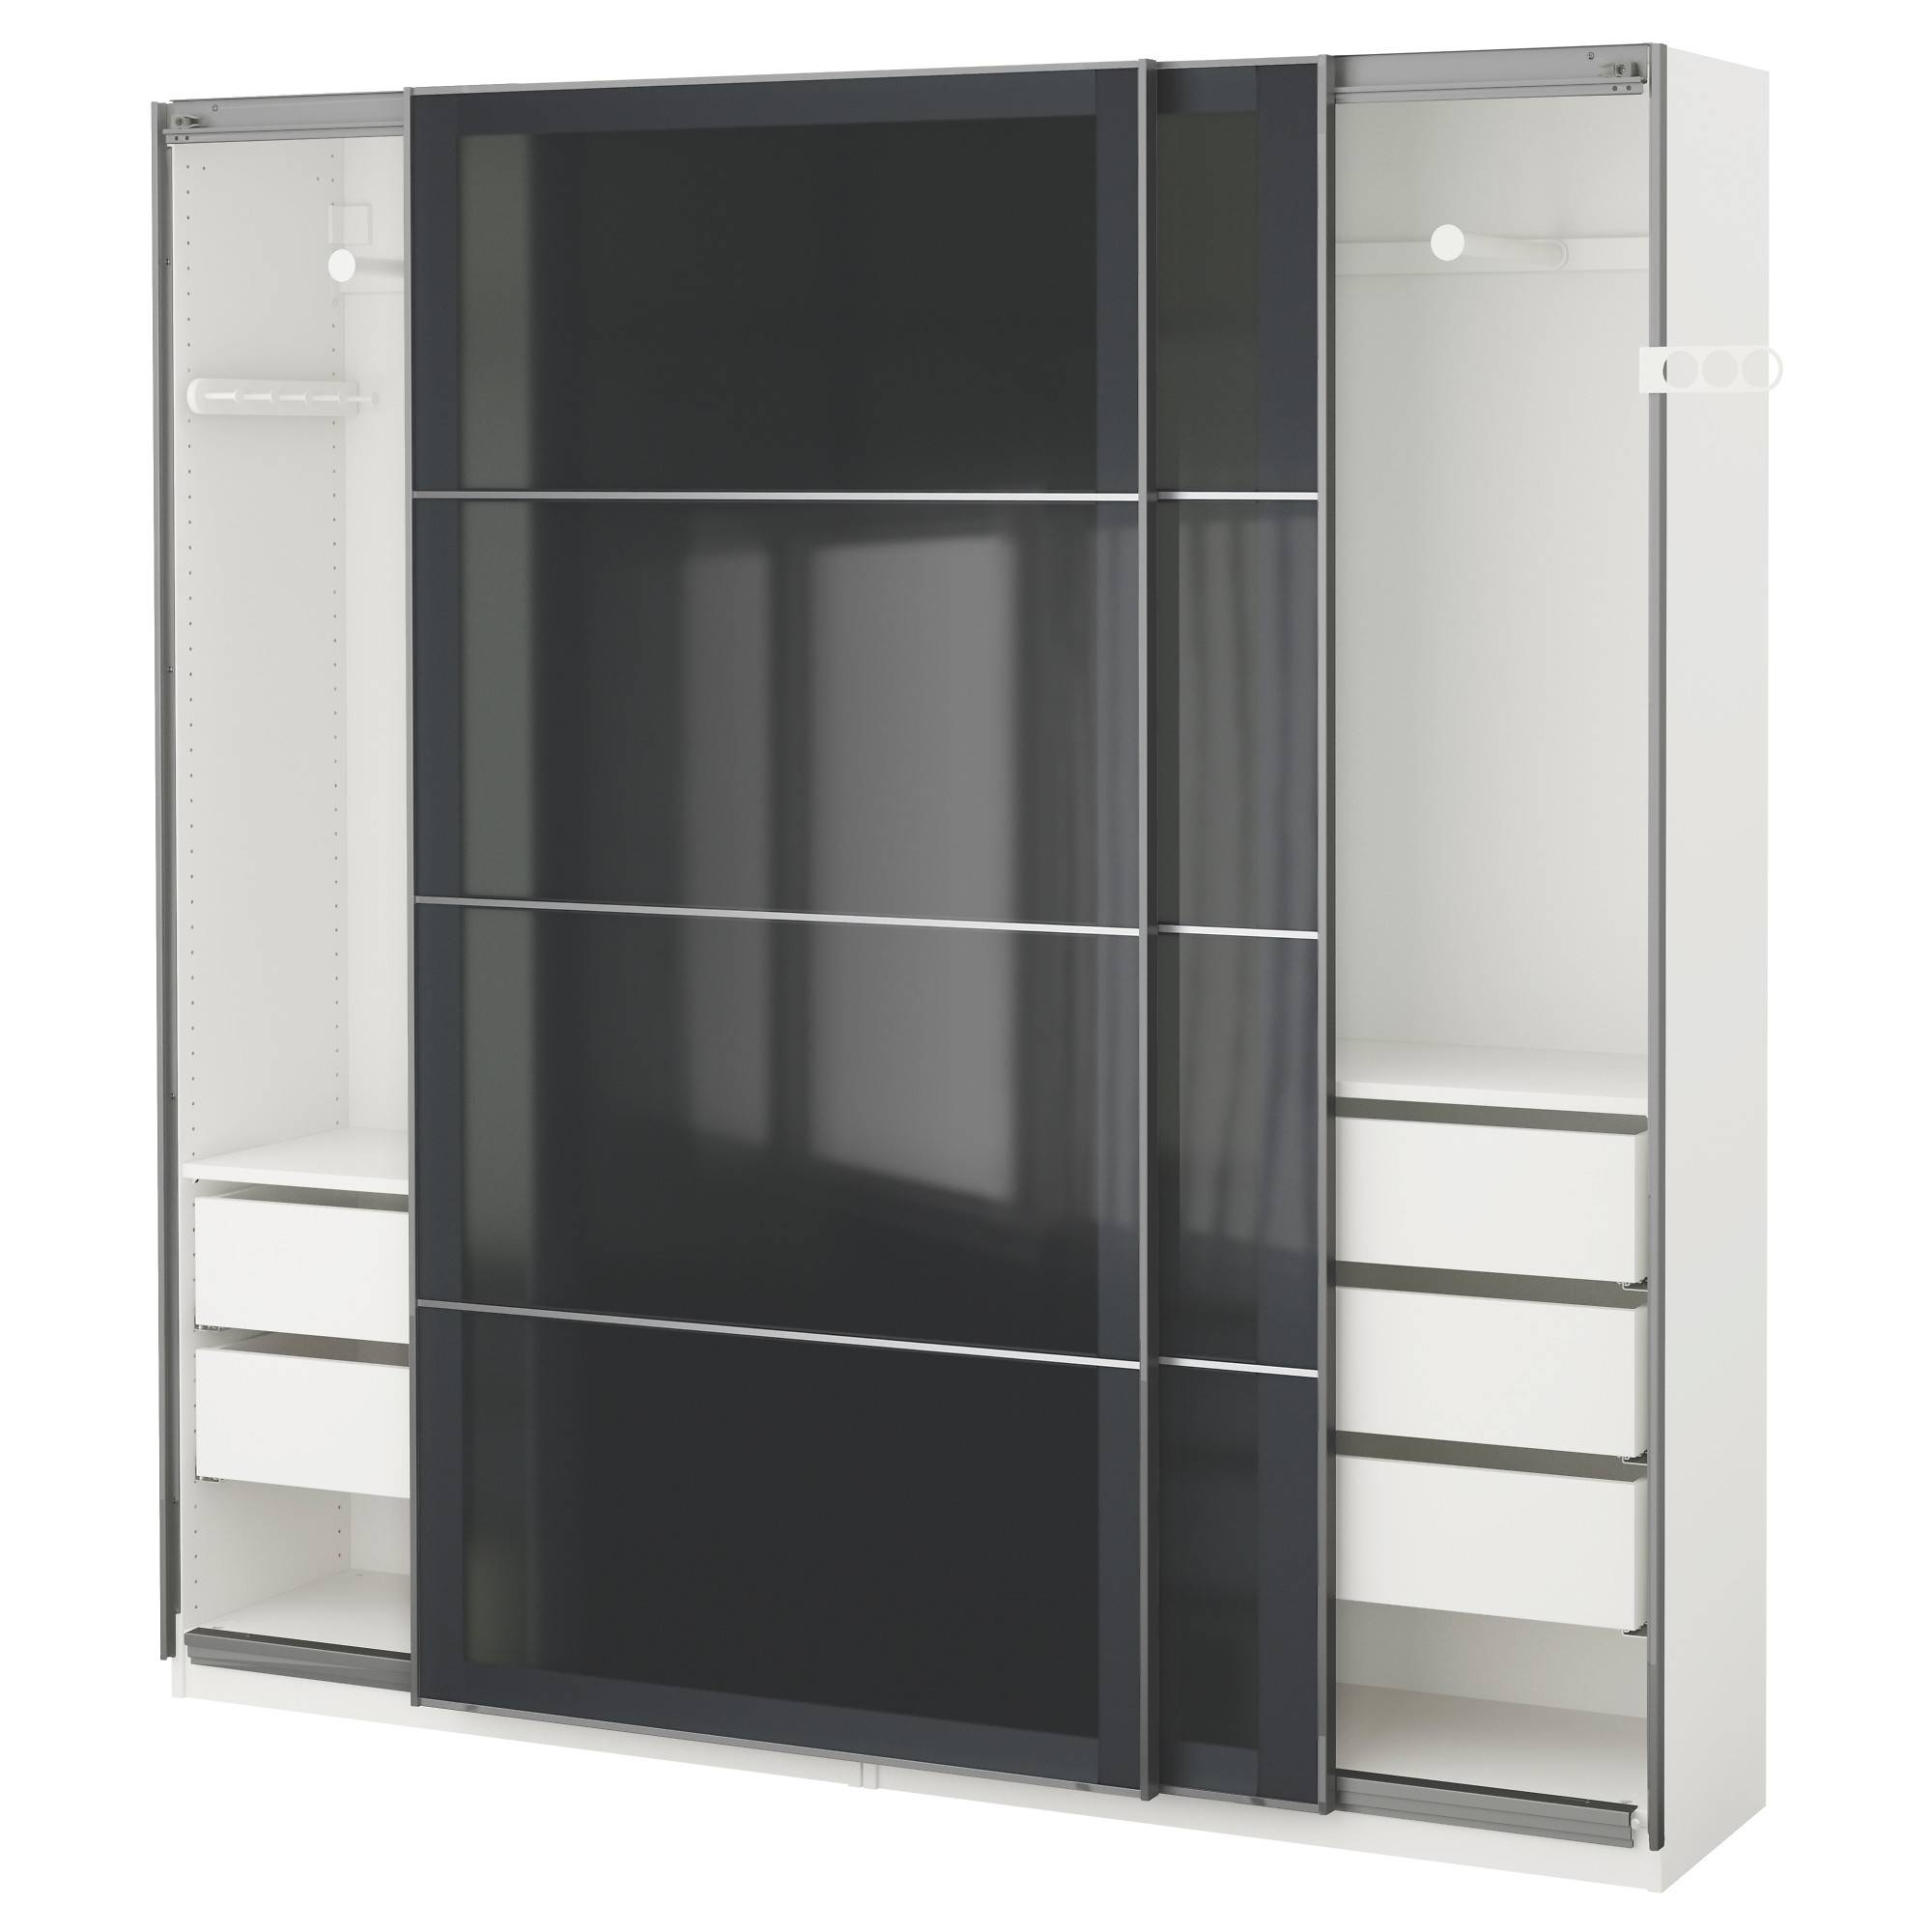 Pax Wardrobe White/uggdal Grey Glass 200X44X201 Cm - Ikea with 3 Door Black Wardrobes (Image 13 of 15)